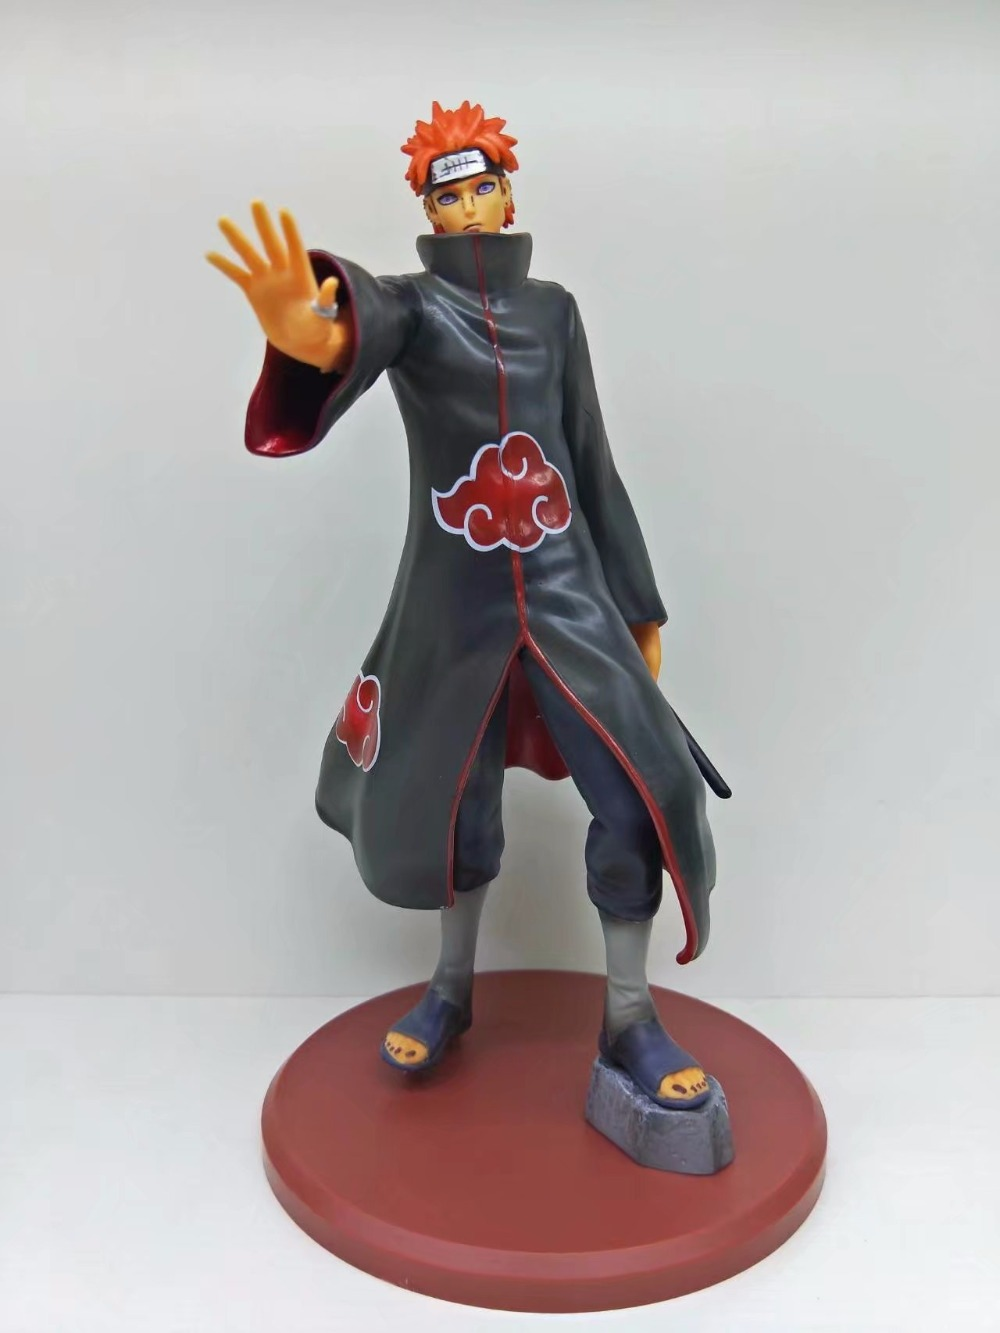 25cm big size Naruto Shippuden Pain Anime Action Figure PVC toys Collection figures for friends gifts 20cm naruto namikaze minato anime action figure pvc toys collection figures for friends gifts